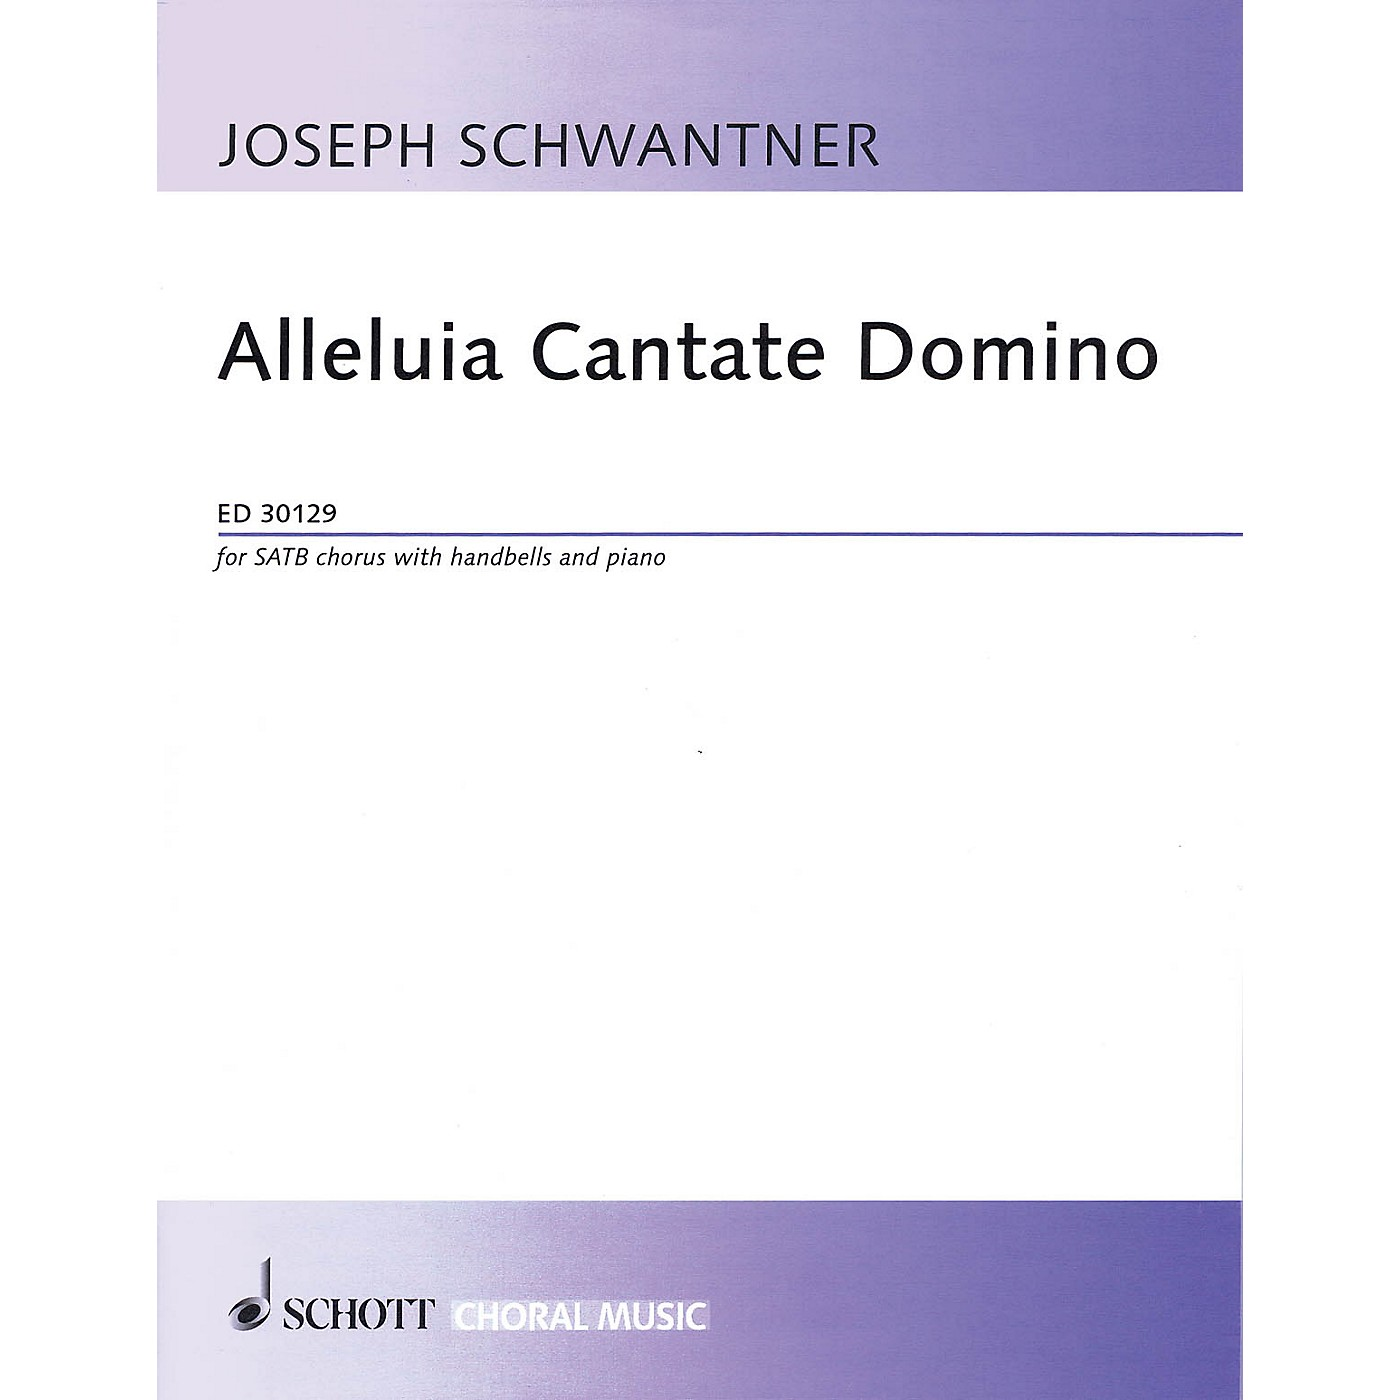 Schott Alleluia Cantate Domino (SATB Chorus with Handbells and Piano) SATB Composed by Joseph Schwantner thumbnail